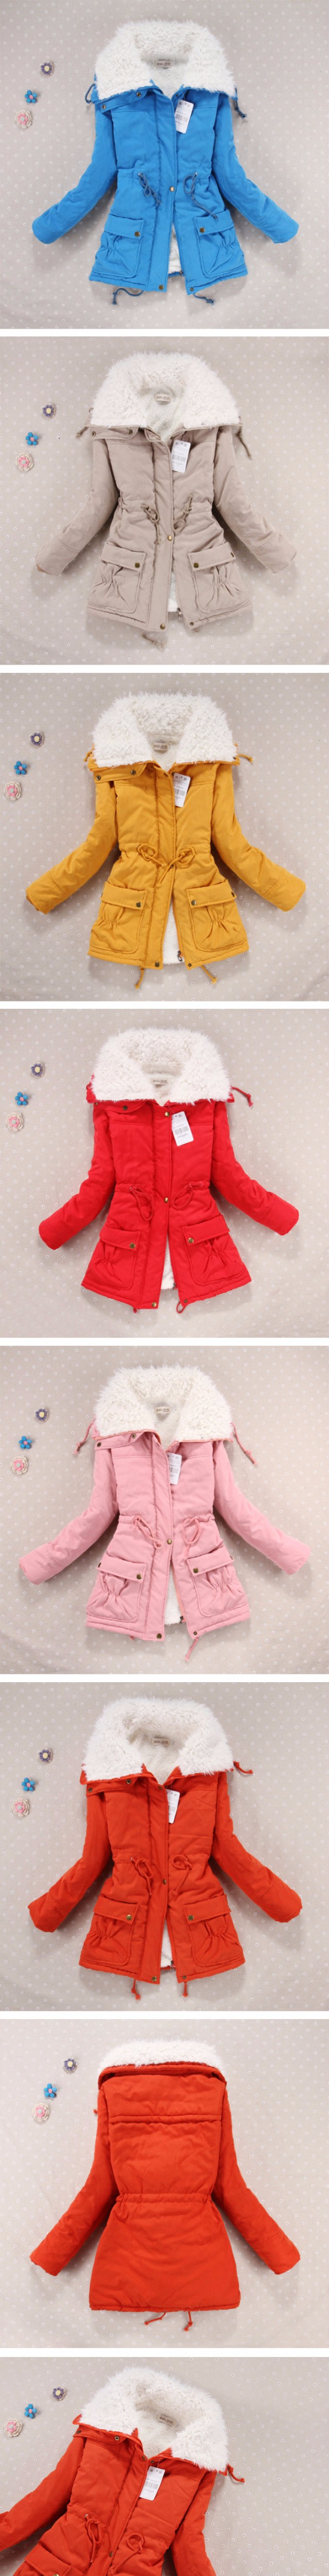 Winter Coat, Women's Medium-Long. Hooded Snow Parka 22